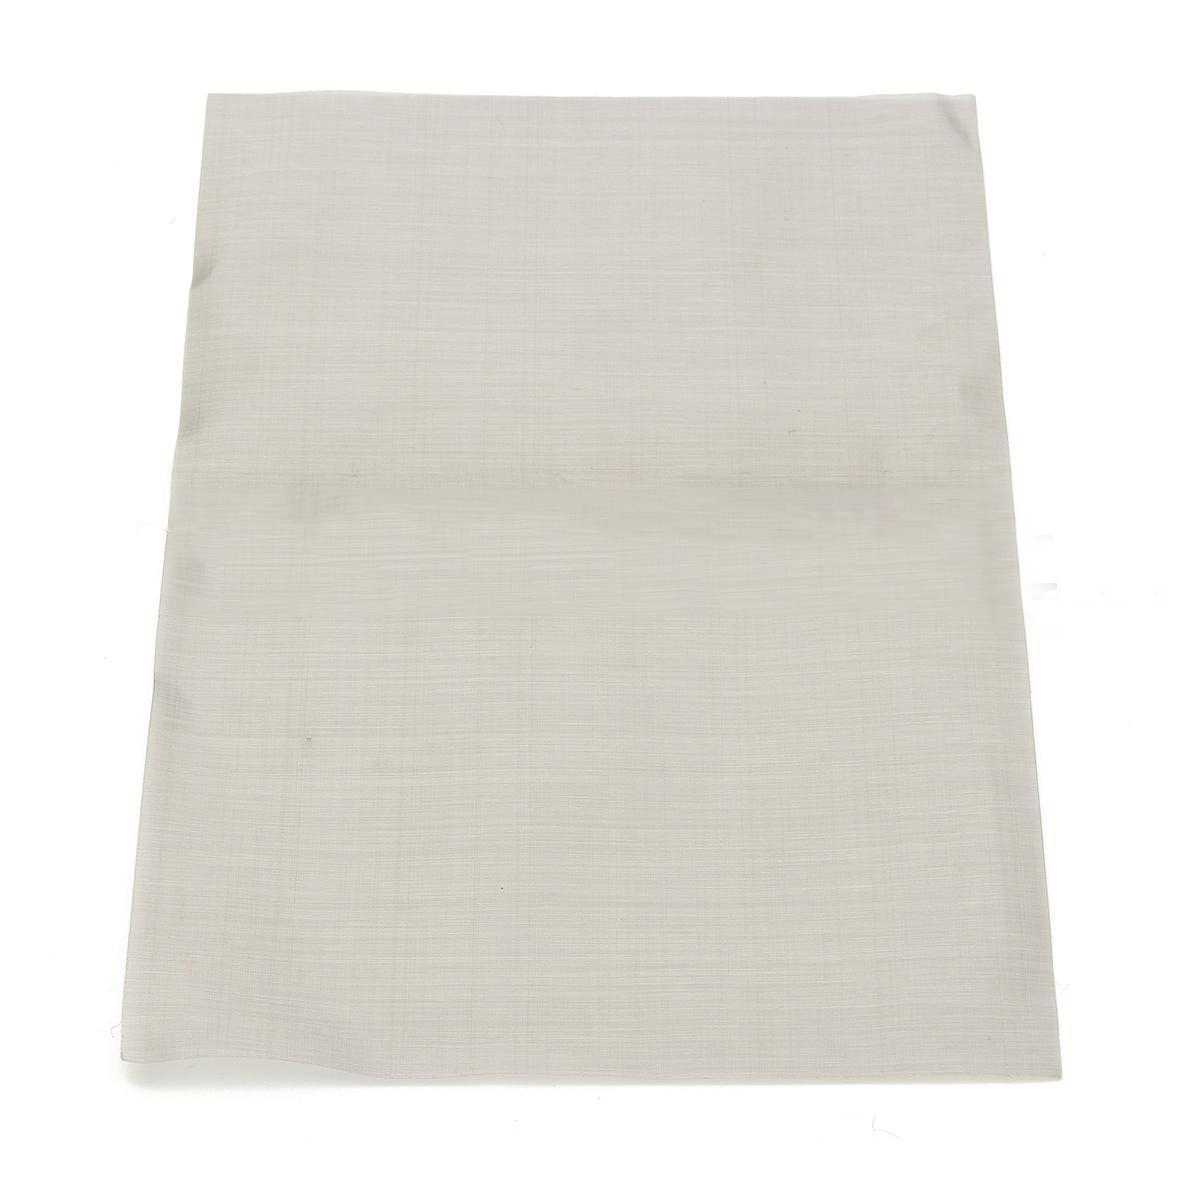 1pc Mayitr 180/300/325/400 Mesh Woven Wire Protective Stainless Steel High Strength Screening Filter Sheet 30cm*20cm sparta 300 warrior paragraph wire mesh tactical mask wire mesh mask